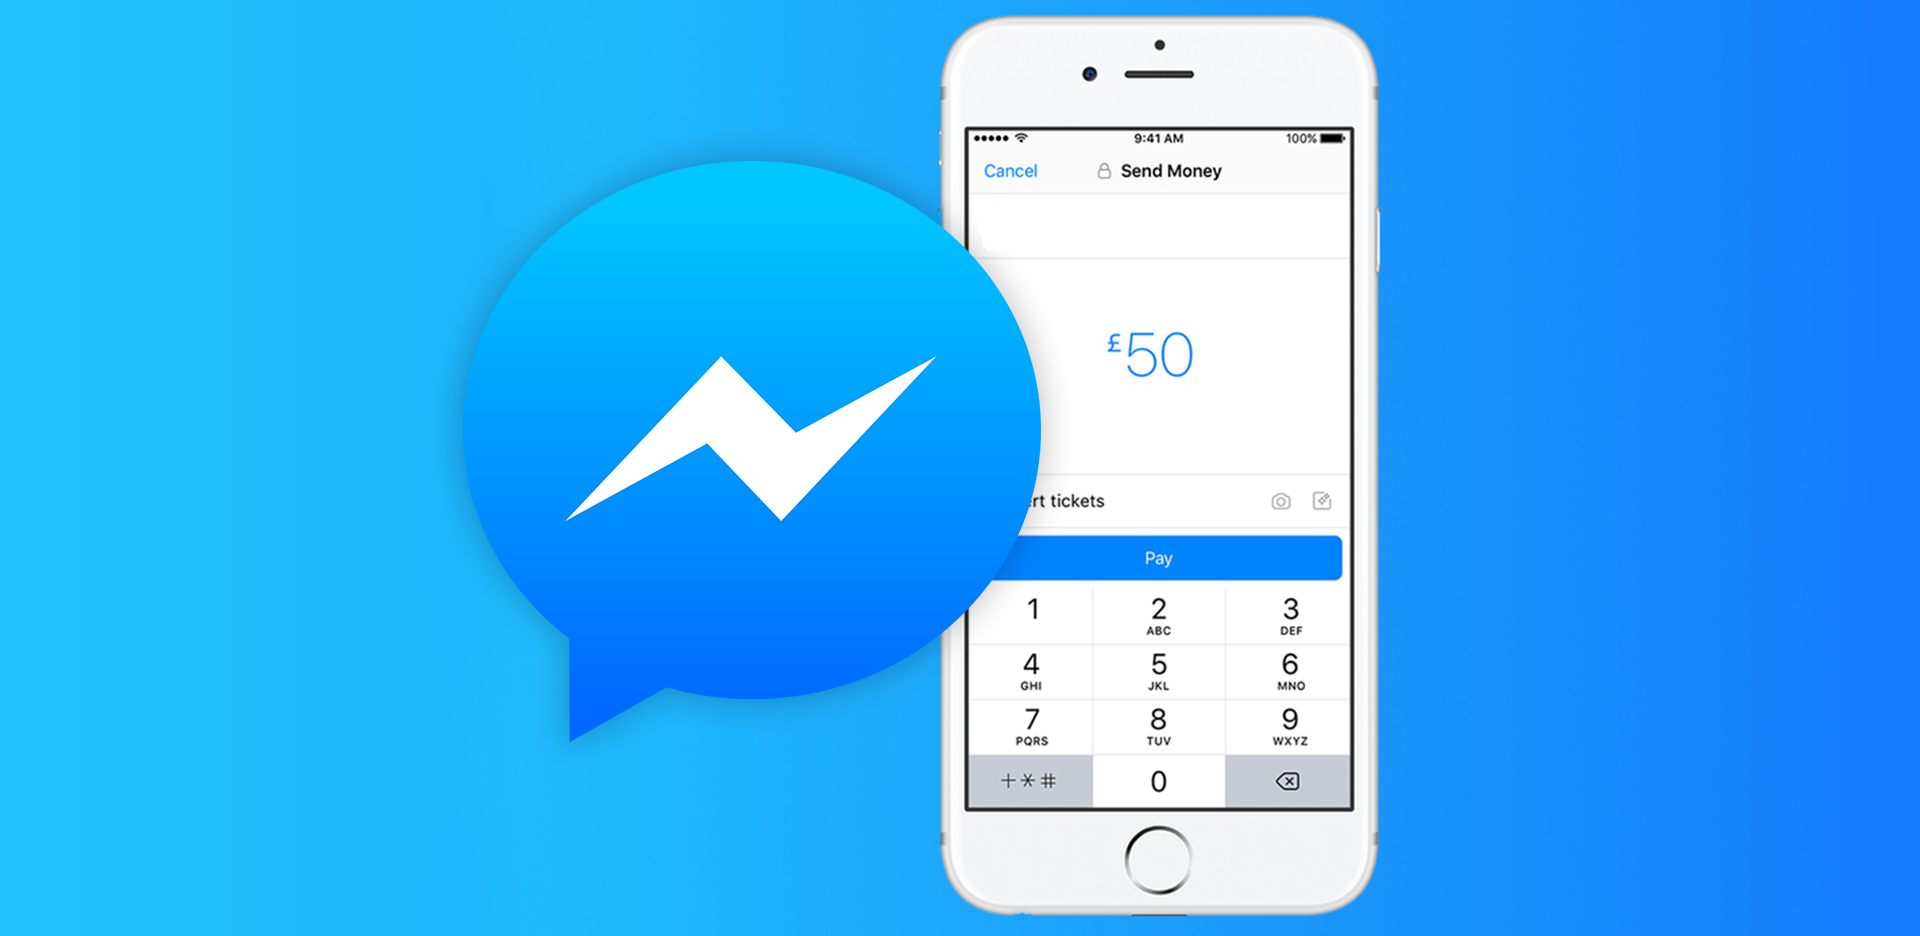 Make Easy Checkouts with Payments via Messenger Apps